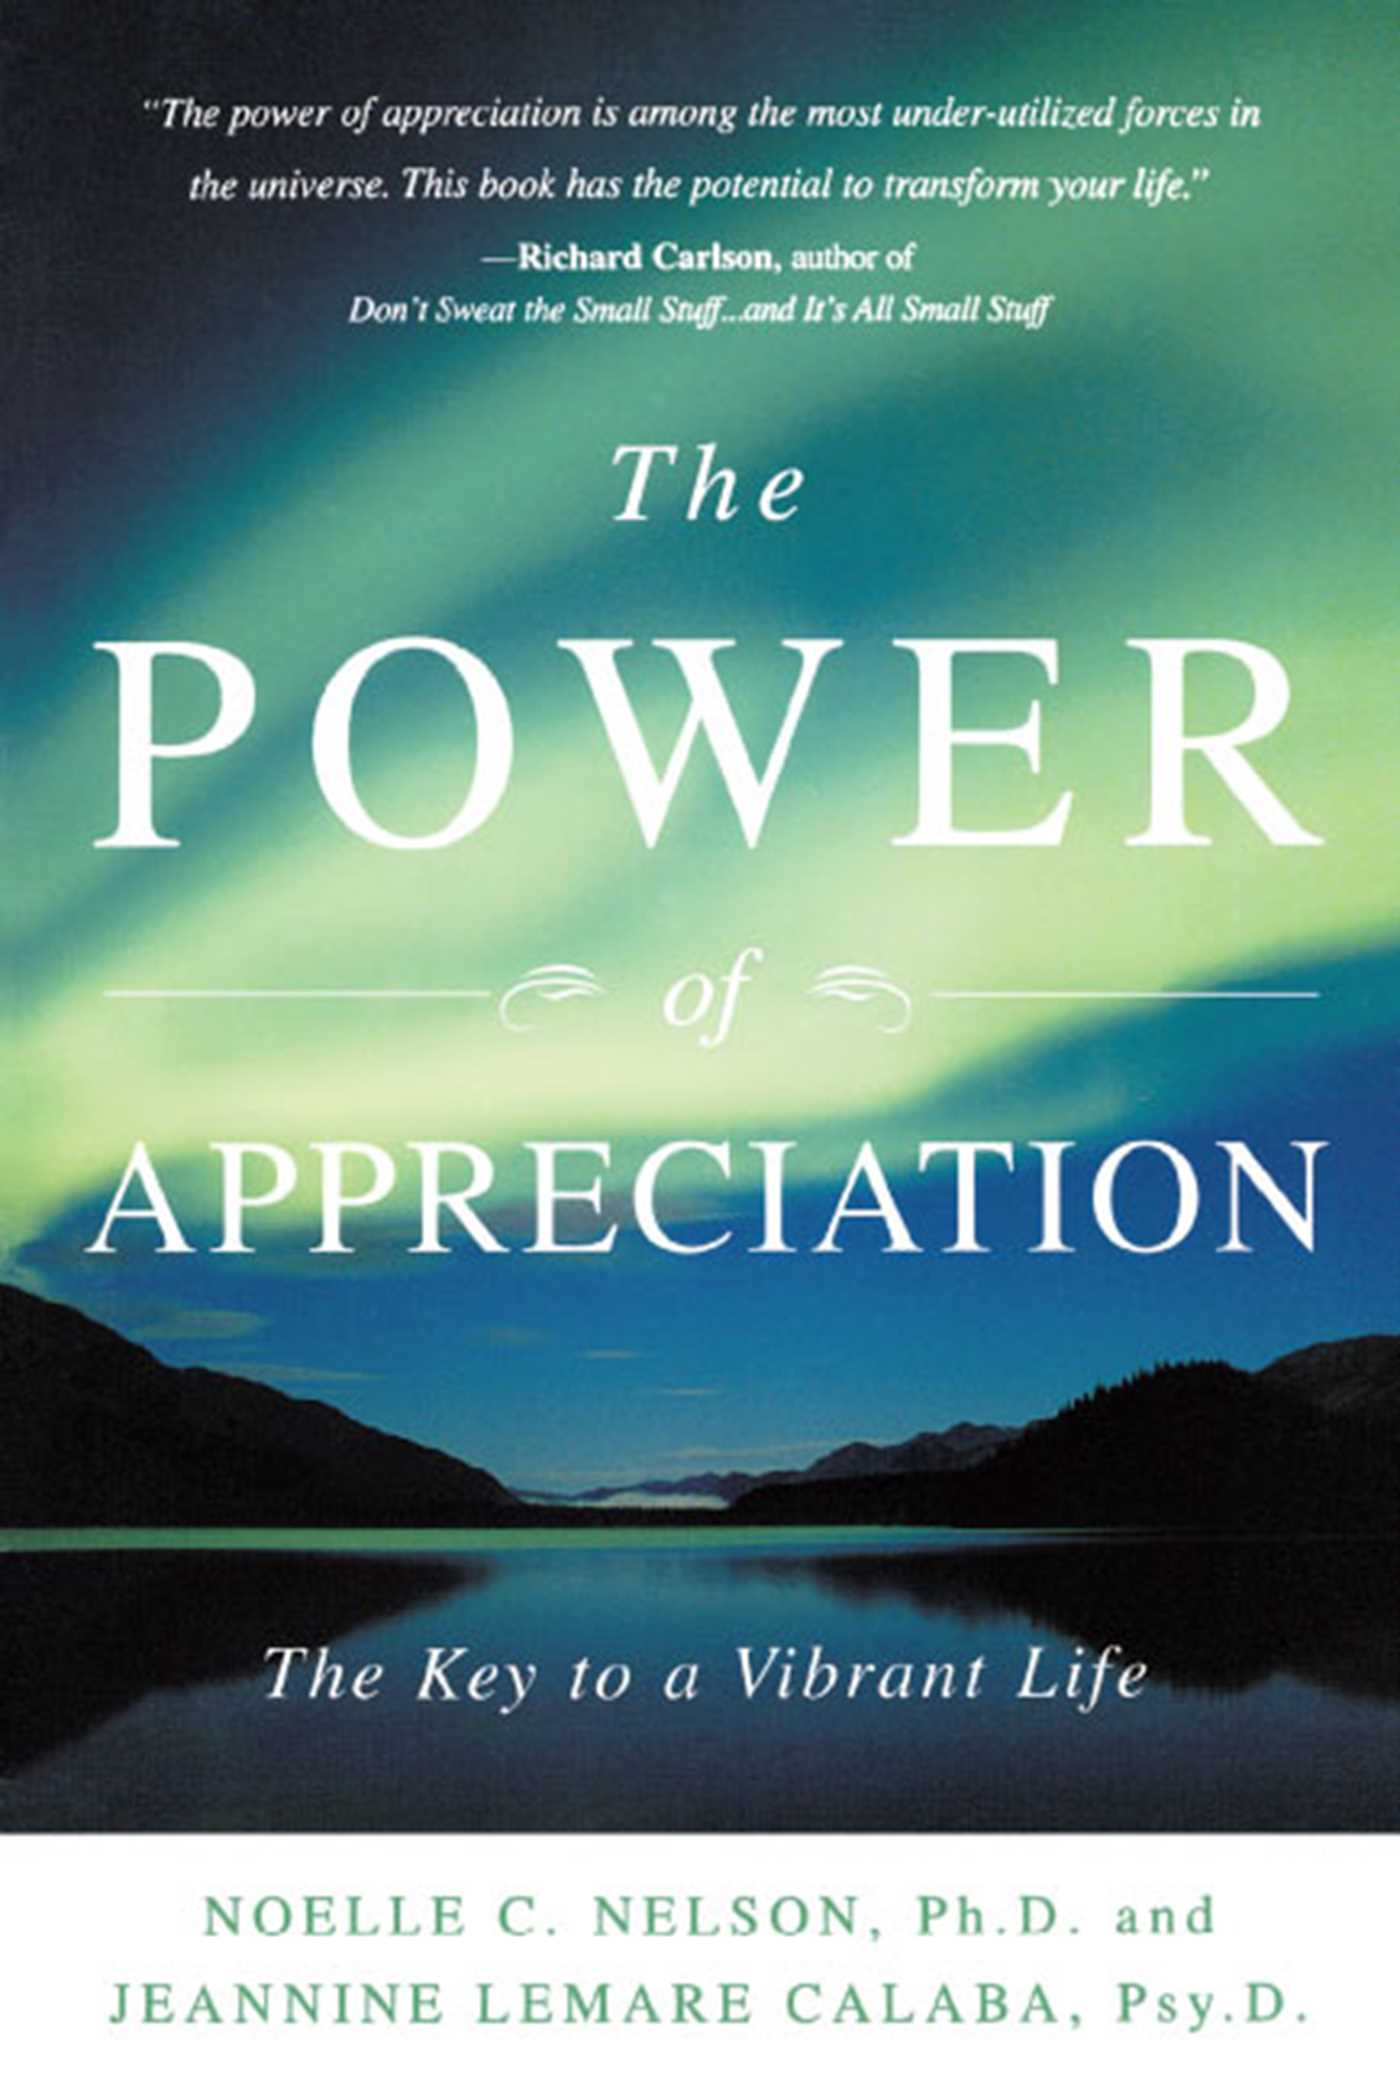 The power of appreciation 9781451654318 hr